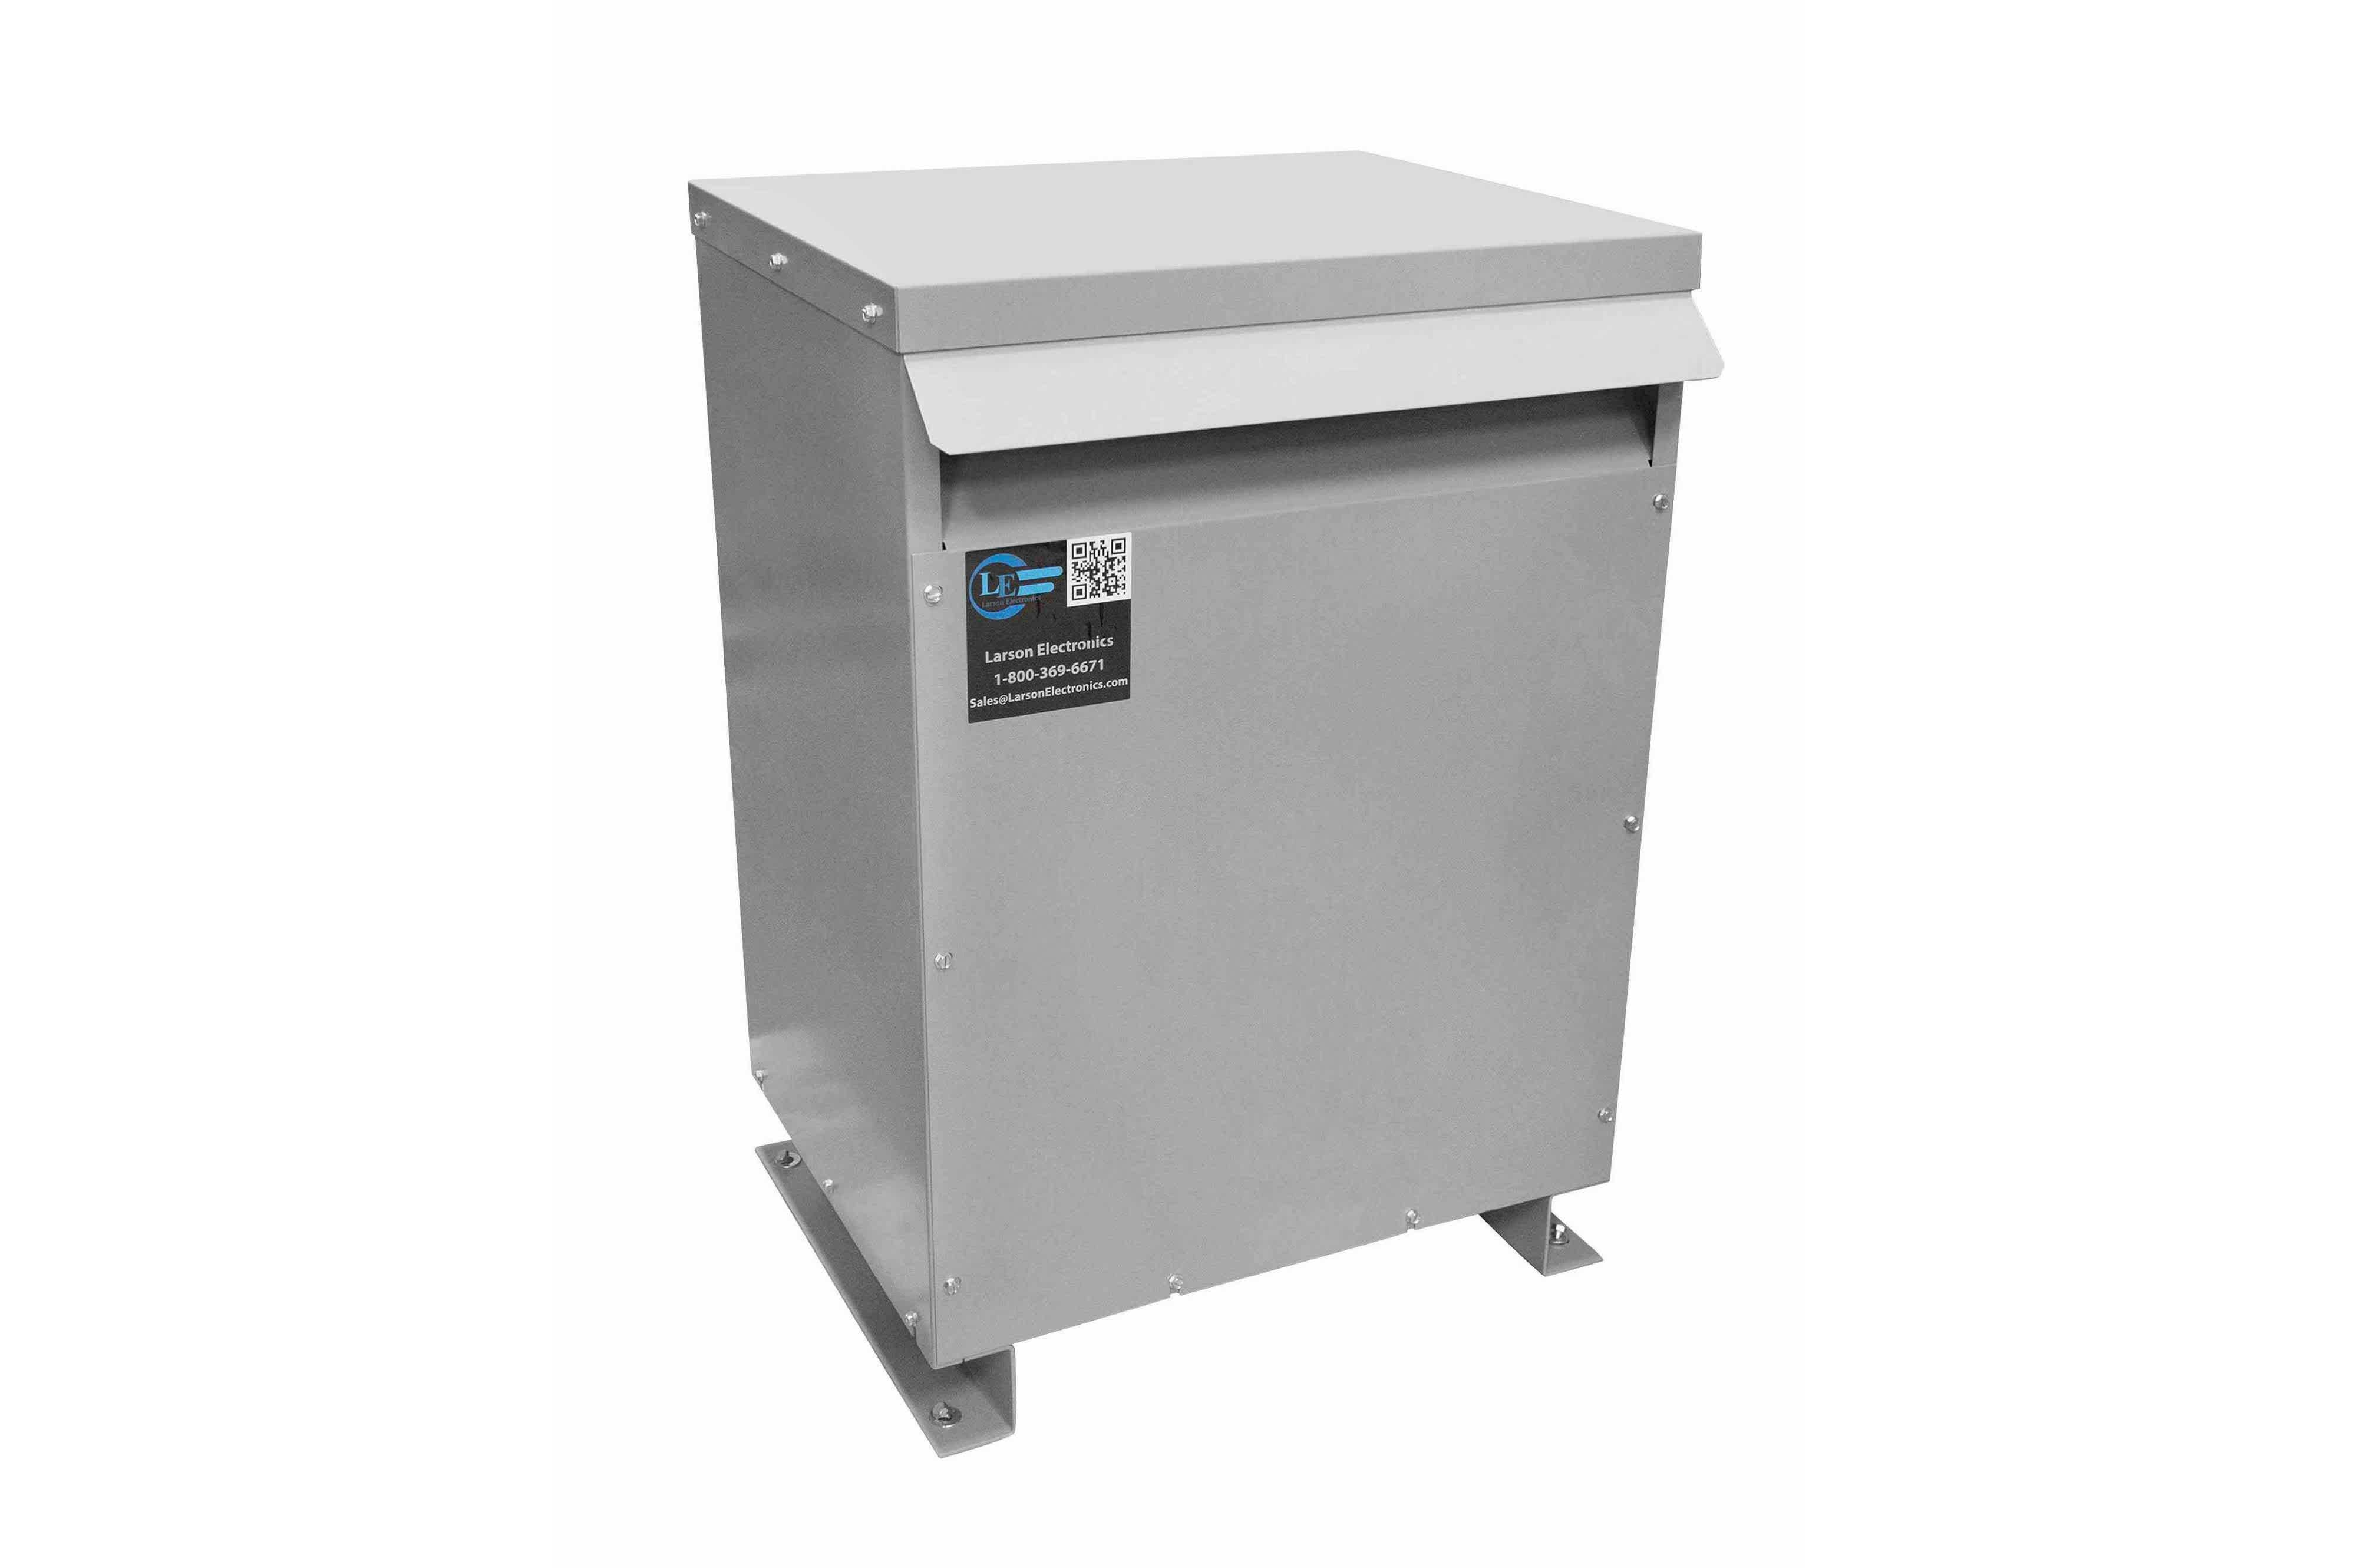 36 kVA 3PH DOE Transformer, 380V Delta Primary, 600Y/347 Wye-N Secondary, N3R, Ventilated, 60 Hz